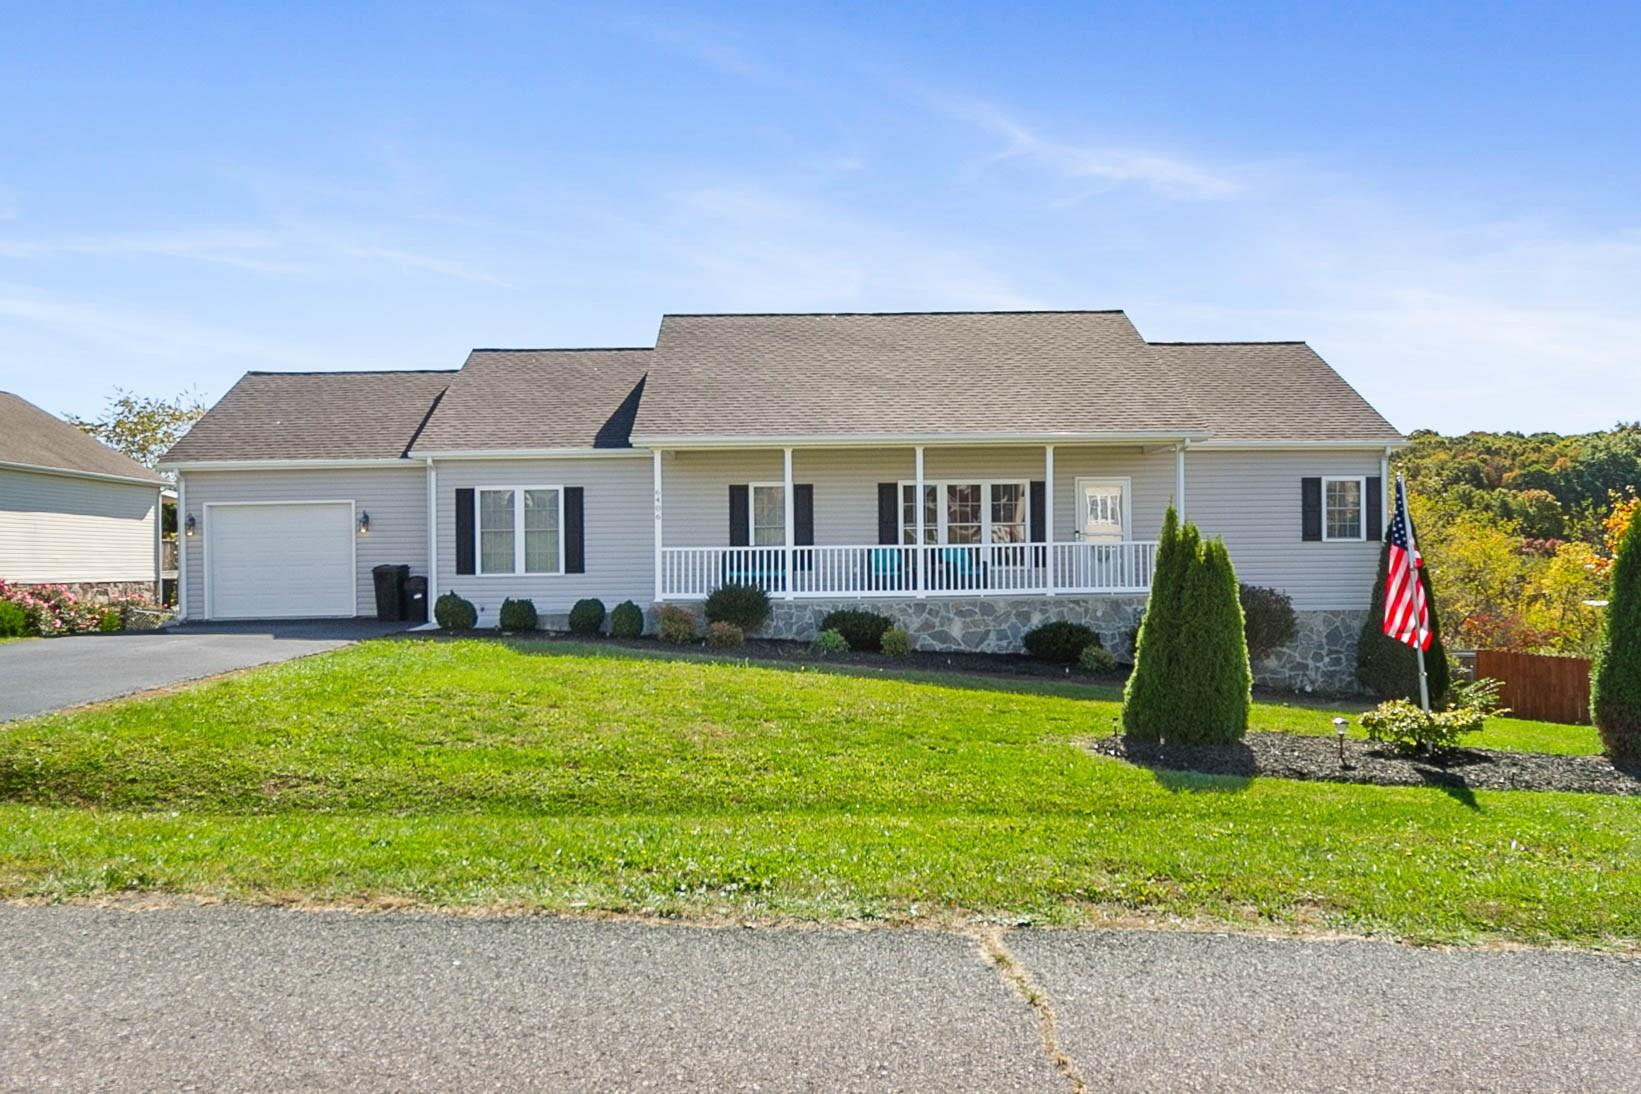 IMMACULATE LIKE NEW RANCH in Dublin is ready for you to move in. Get 3,428 SF of Room to spread out w/4 BR, 3 Baths, Family Room, Media Room, Sun Room, Office, & EXTRA STORAGE! Enjoy your Master Bedroom Suite w/2 Walk In Closets, & Master Bath Room w/Garden Tub & Separate Dble Shower. You can use 1 WIC as Office/Nursery/Work-Out Room. Open Floor Plan of Living Room/Kitchen/Dining Room & Sun Room. You will love the L-Shaped 10.25' long Pantry off Laundry Room which is off the Kitchen. Downstairs-Can be Mother-In-Law or Teenager Heaven w/HUGE Family Room where you can put pool table+ping pong table, Large Bedroom, Custom Bath Room & the Media room comes w/ 2 year old Sectional Couch. Projector & Screen are negotiable. Outside-enjoy your fenced rear yard, paved DW, Covered Concrete front porch & Covered Rear Concrete Patio. Excellent location -7 minutes & 4 miles from I-81 at Dublin Exit. Basement was professionally finished in last 2 years. No showings after 6:30 PM due to small child.